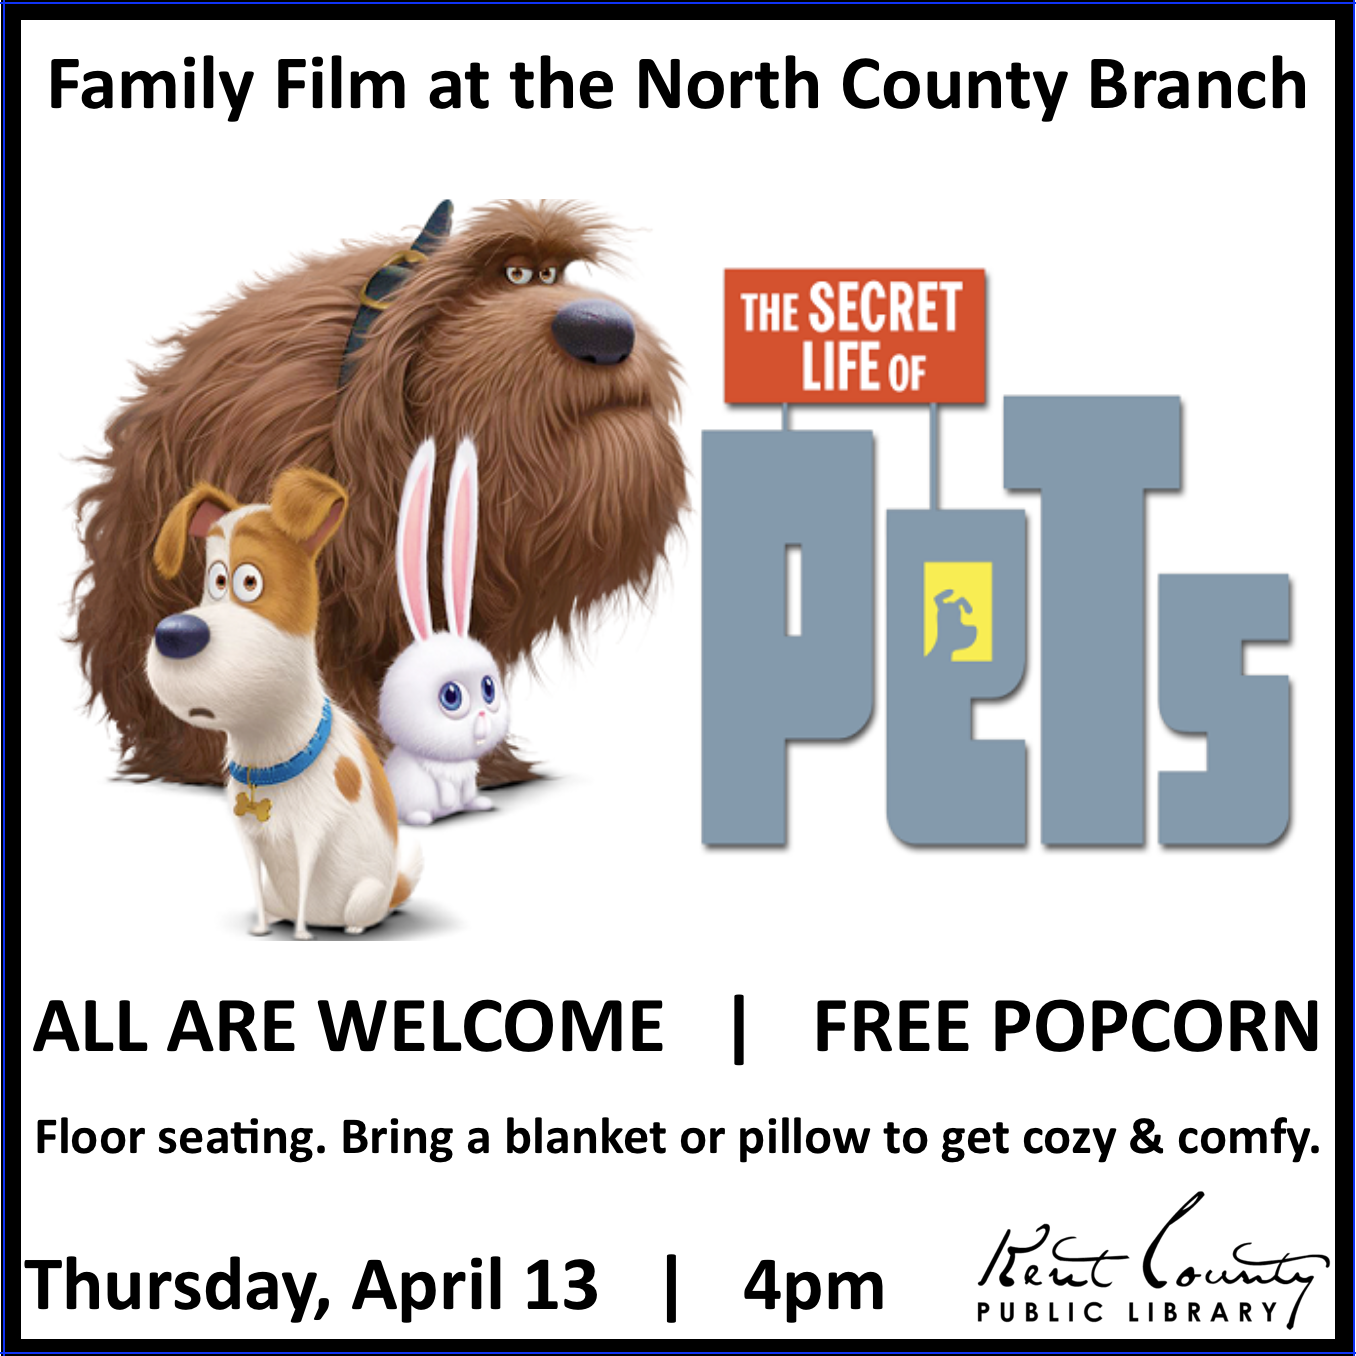 Family Movie - The Secret Life of Pets